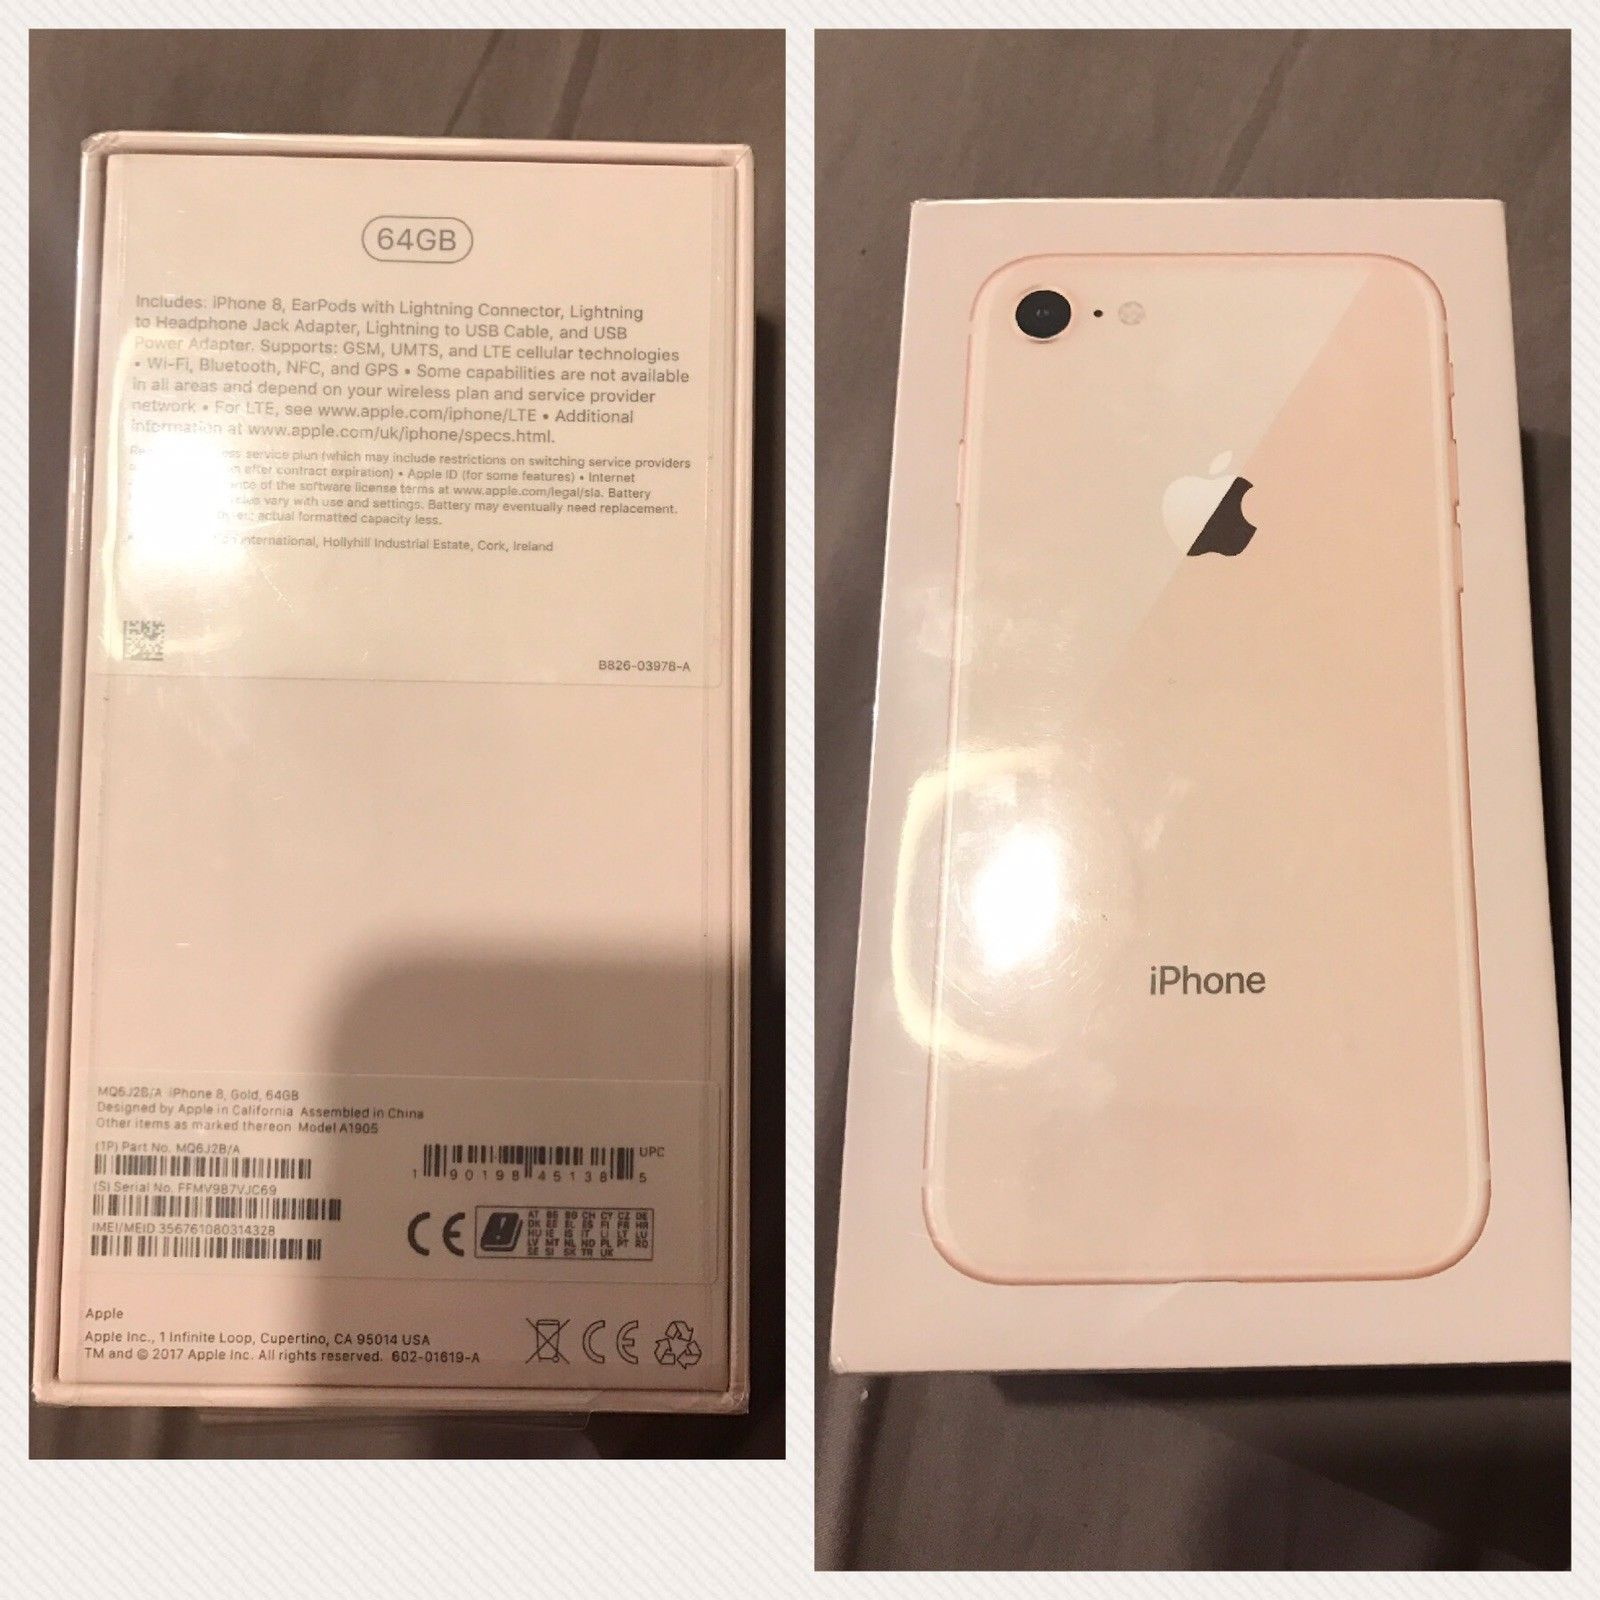 Apple iPhone 64gb.jpg